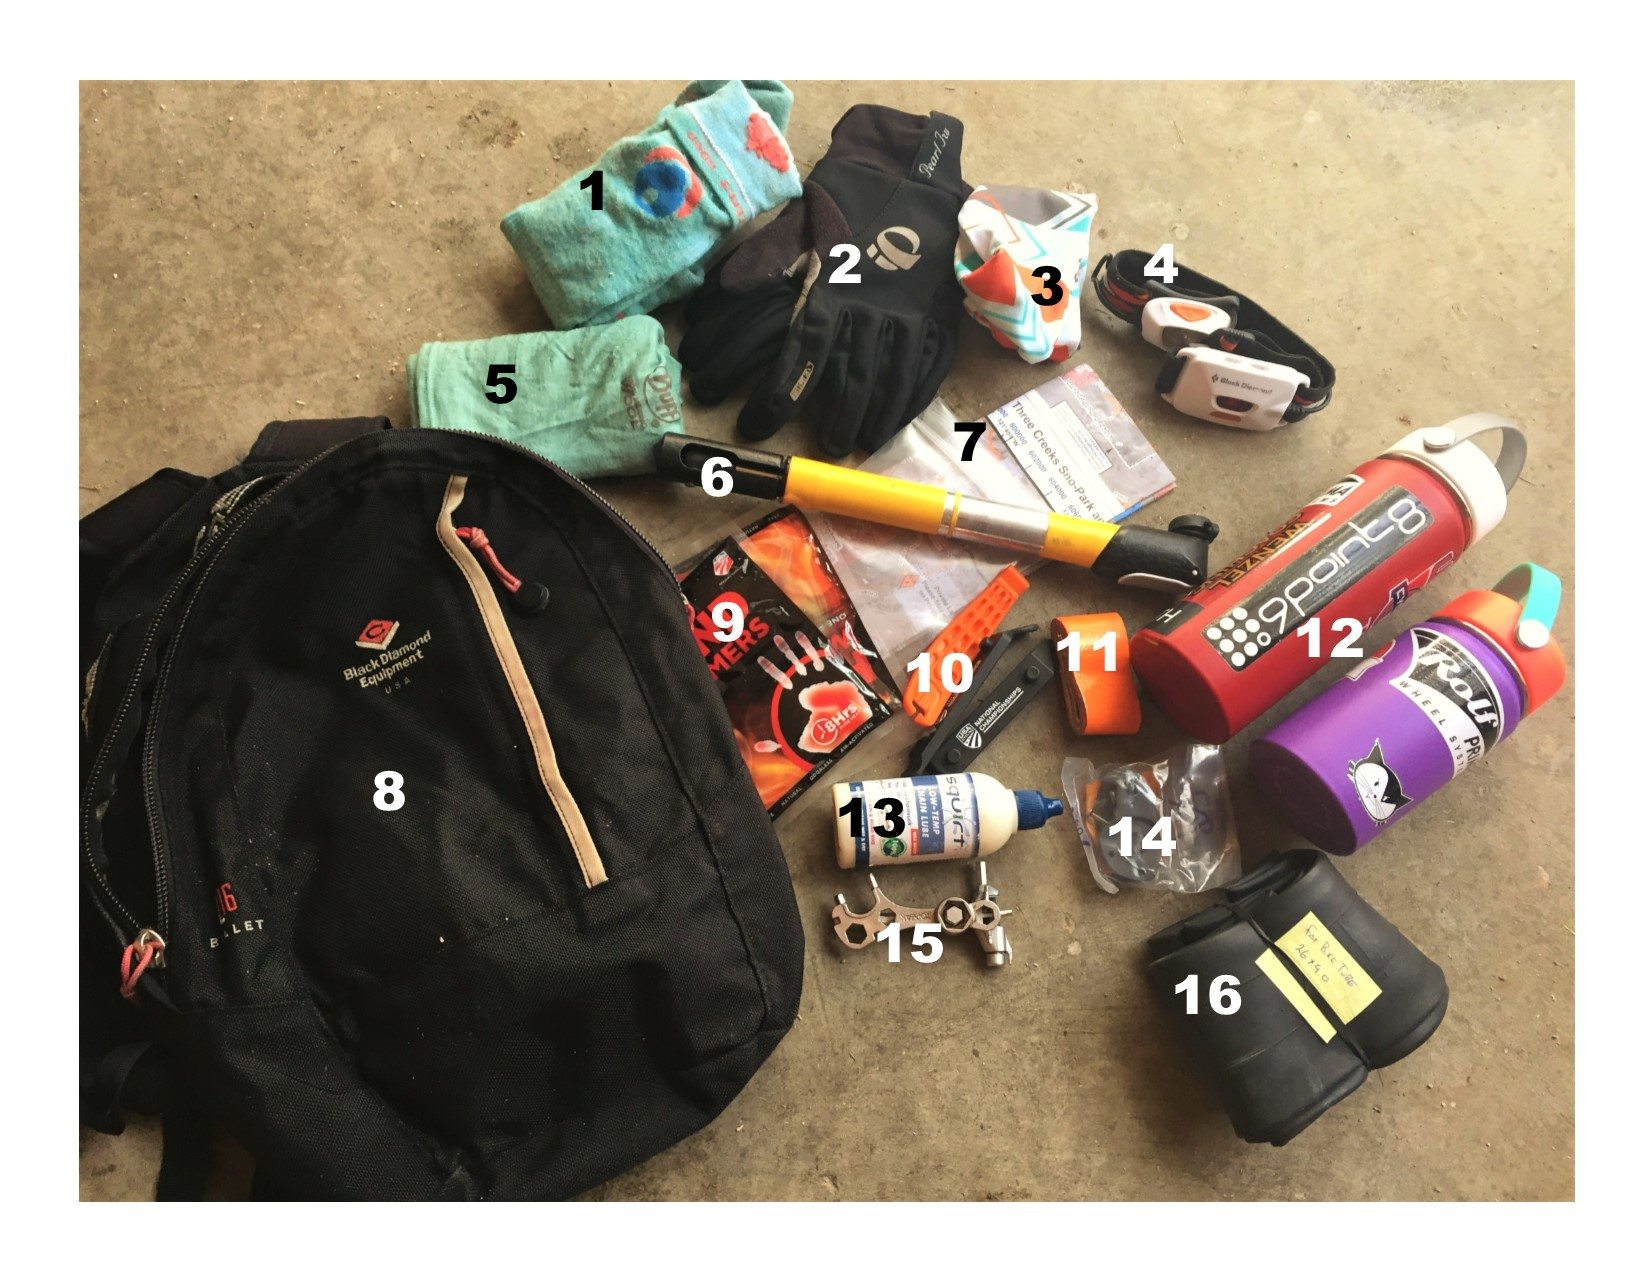 Contents of fat bike backpack by Coach Emma Maaranen of Wenzel Coaching